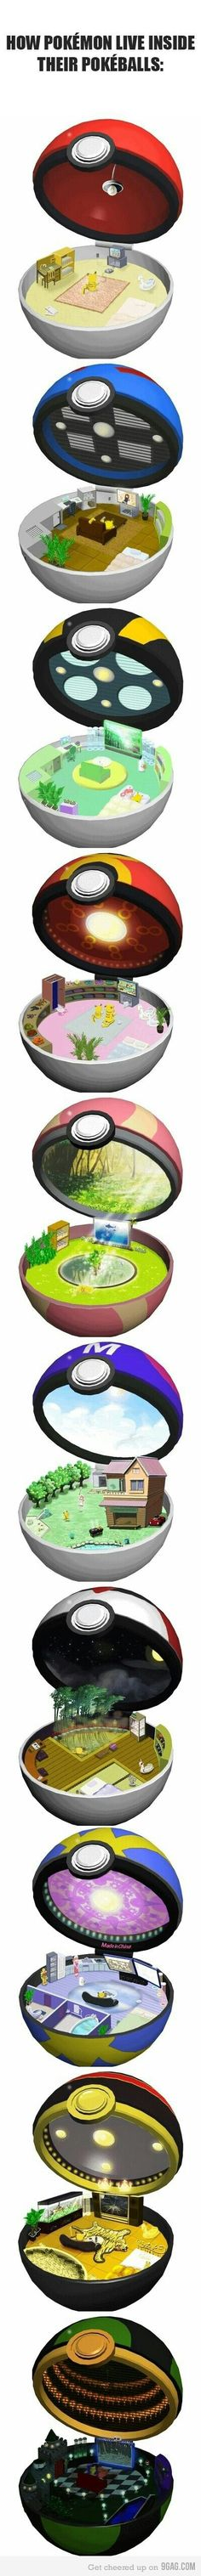 How Pokemon live inside a Pokeball